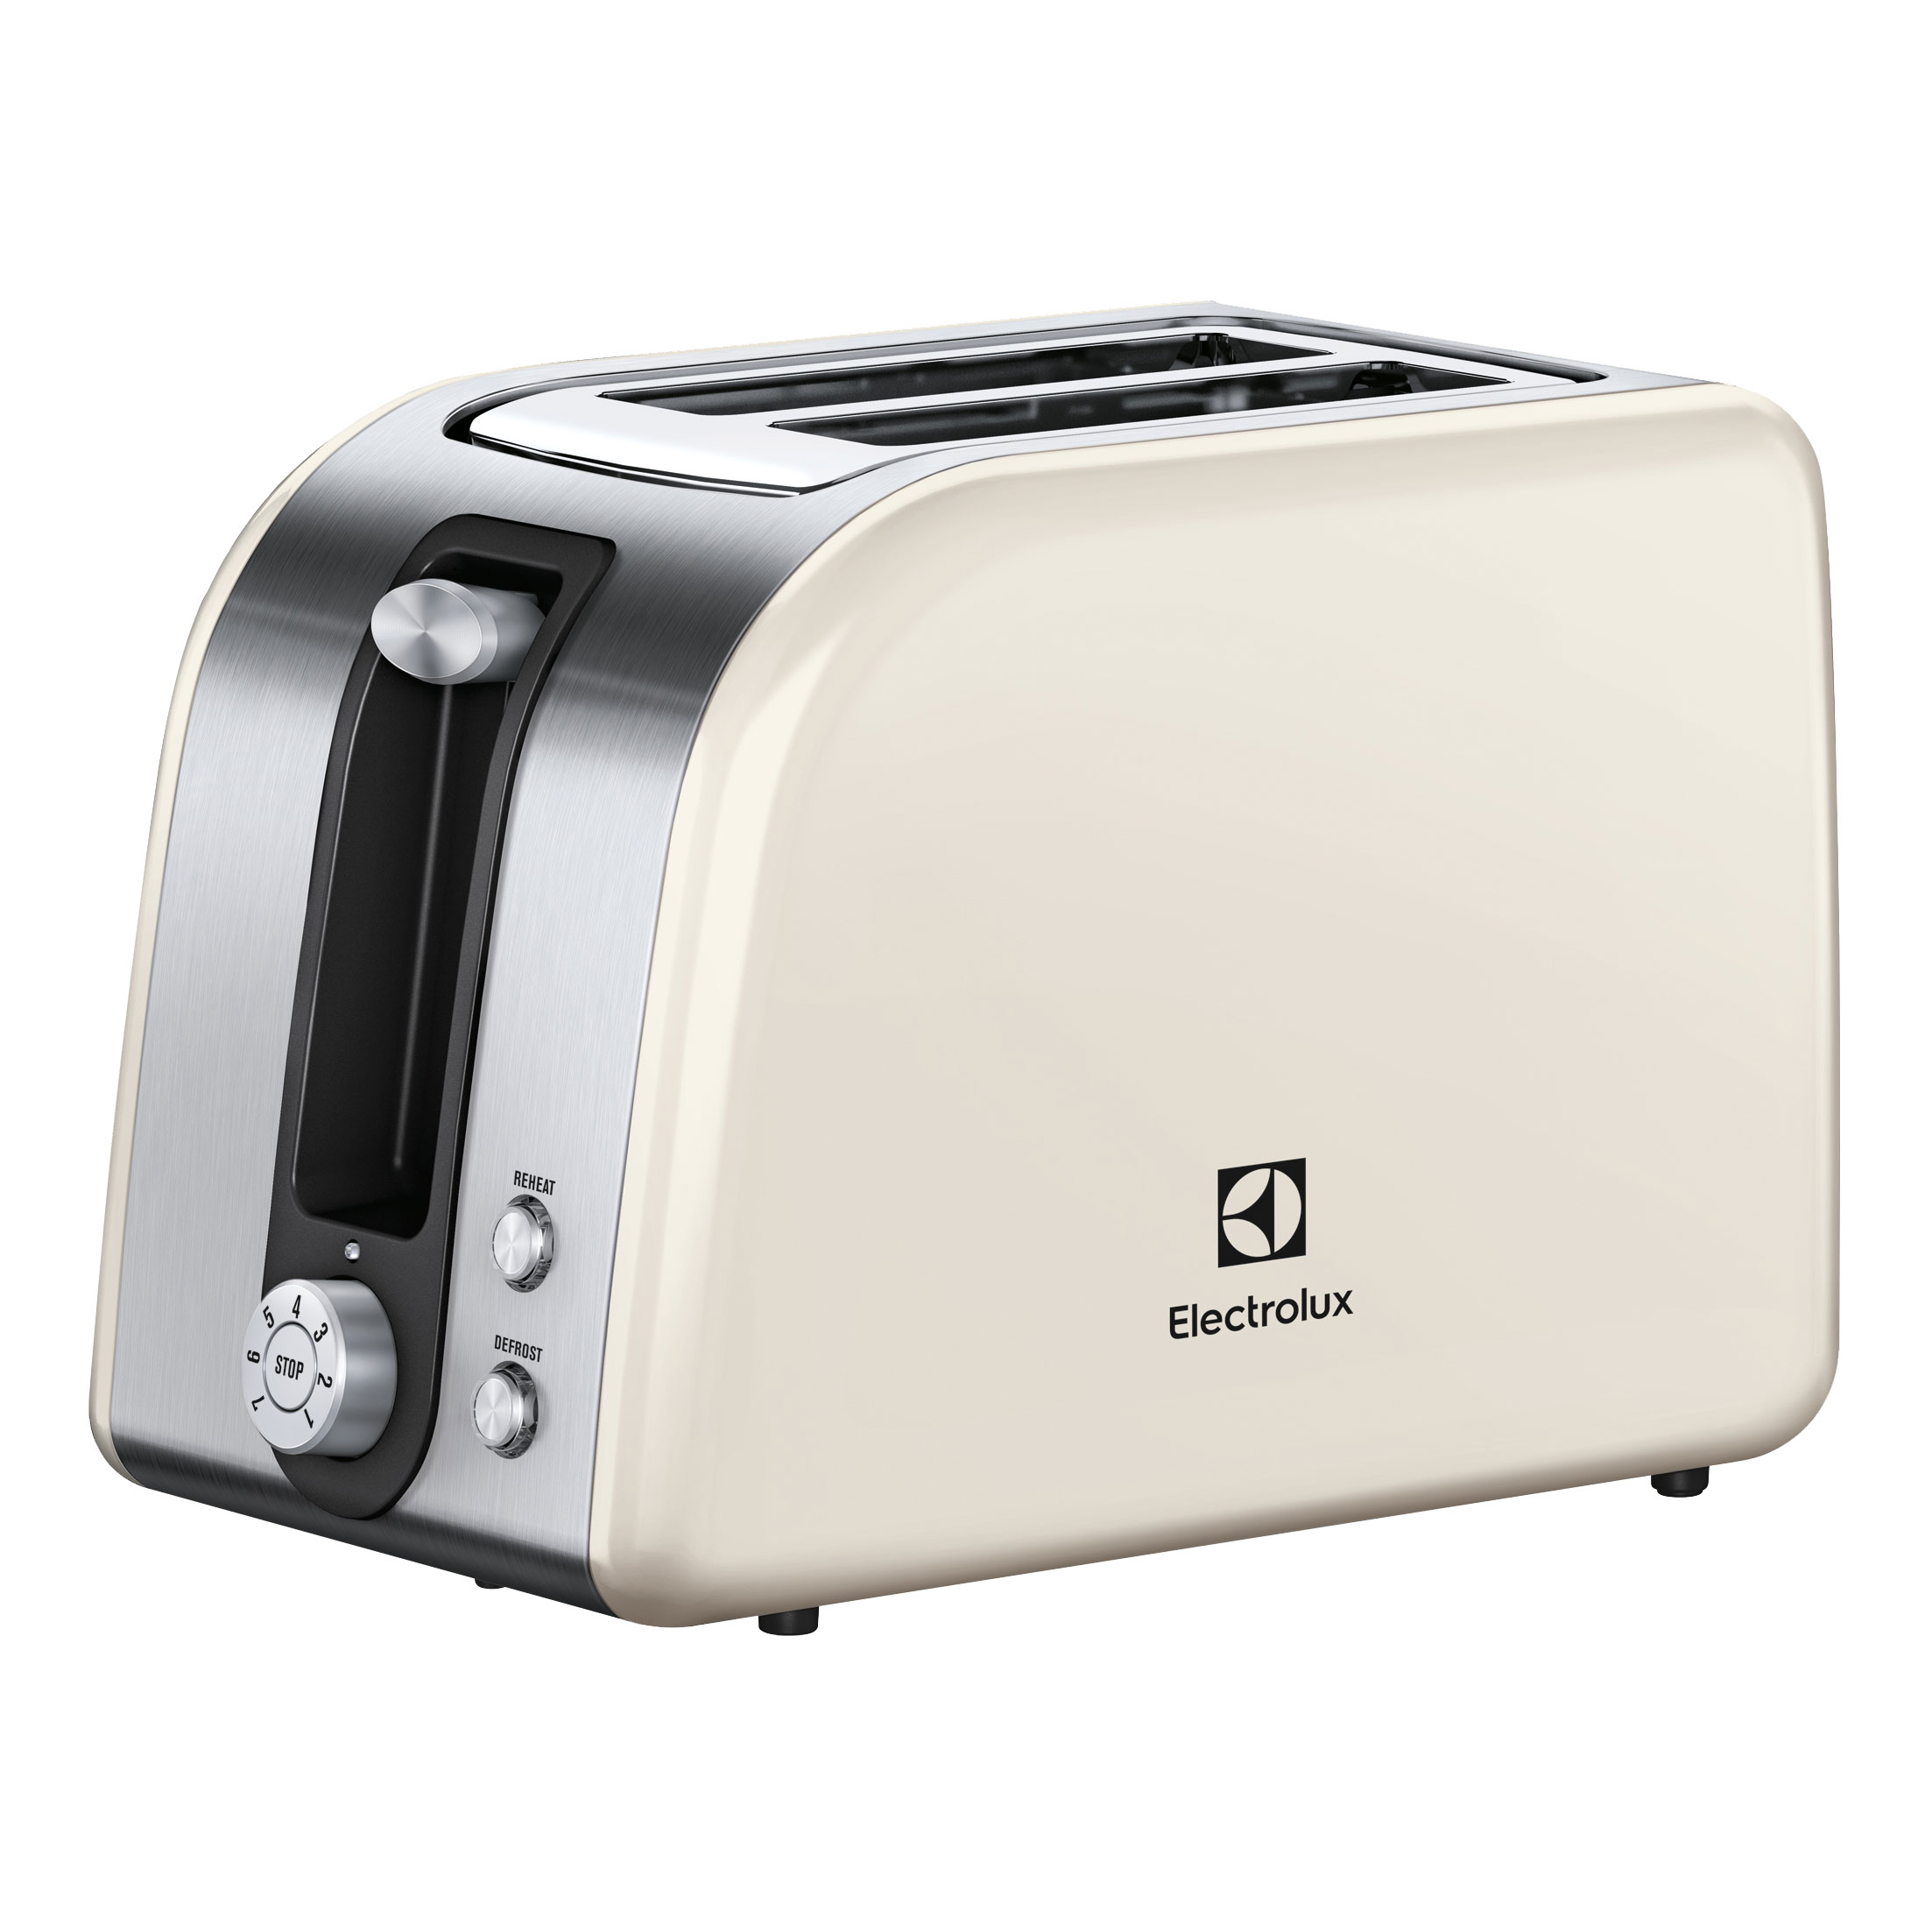 Electrolux toaster - Love Your Day - Hvid